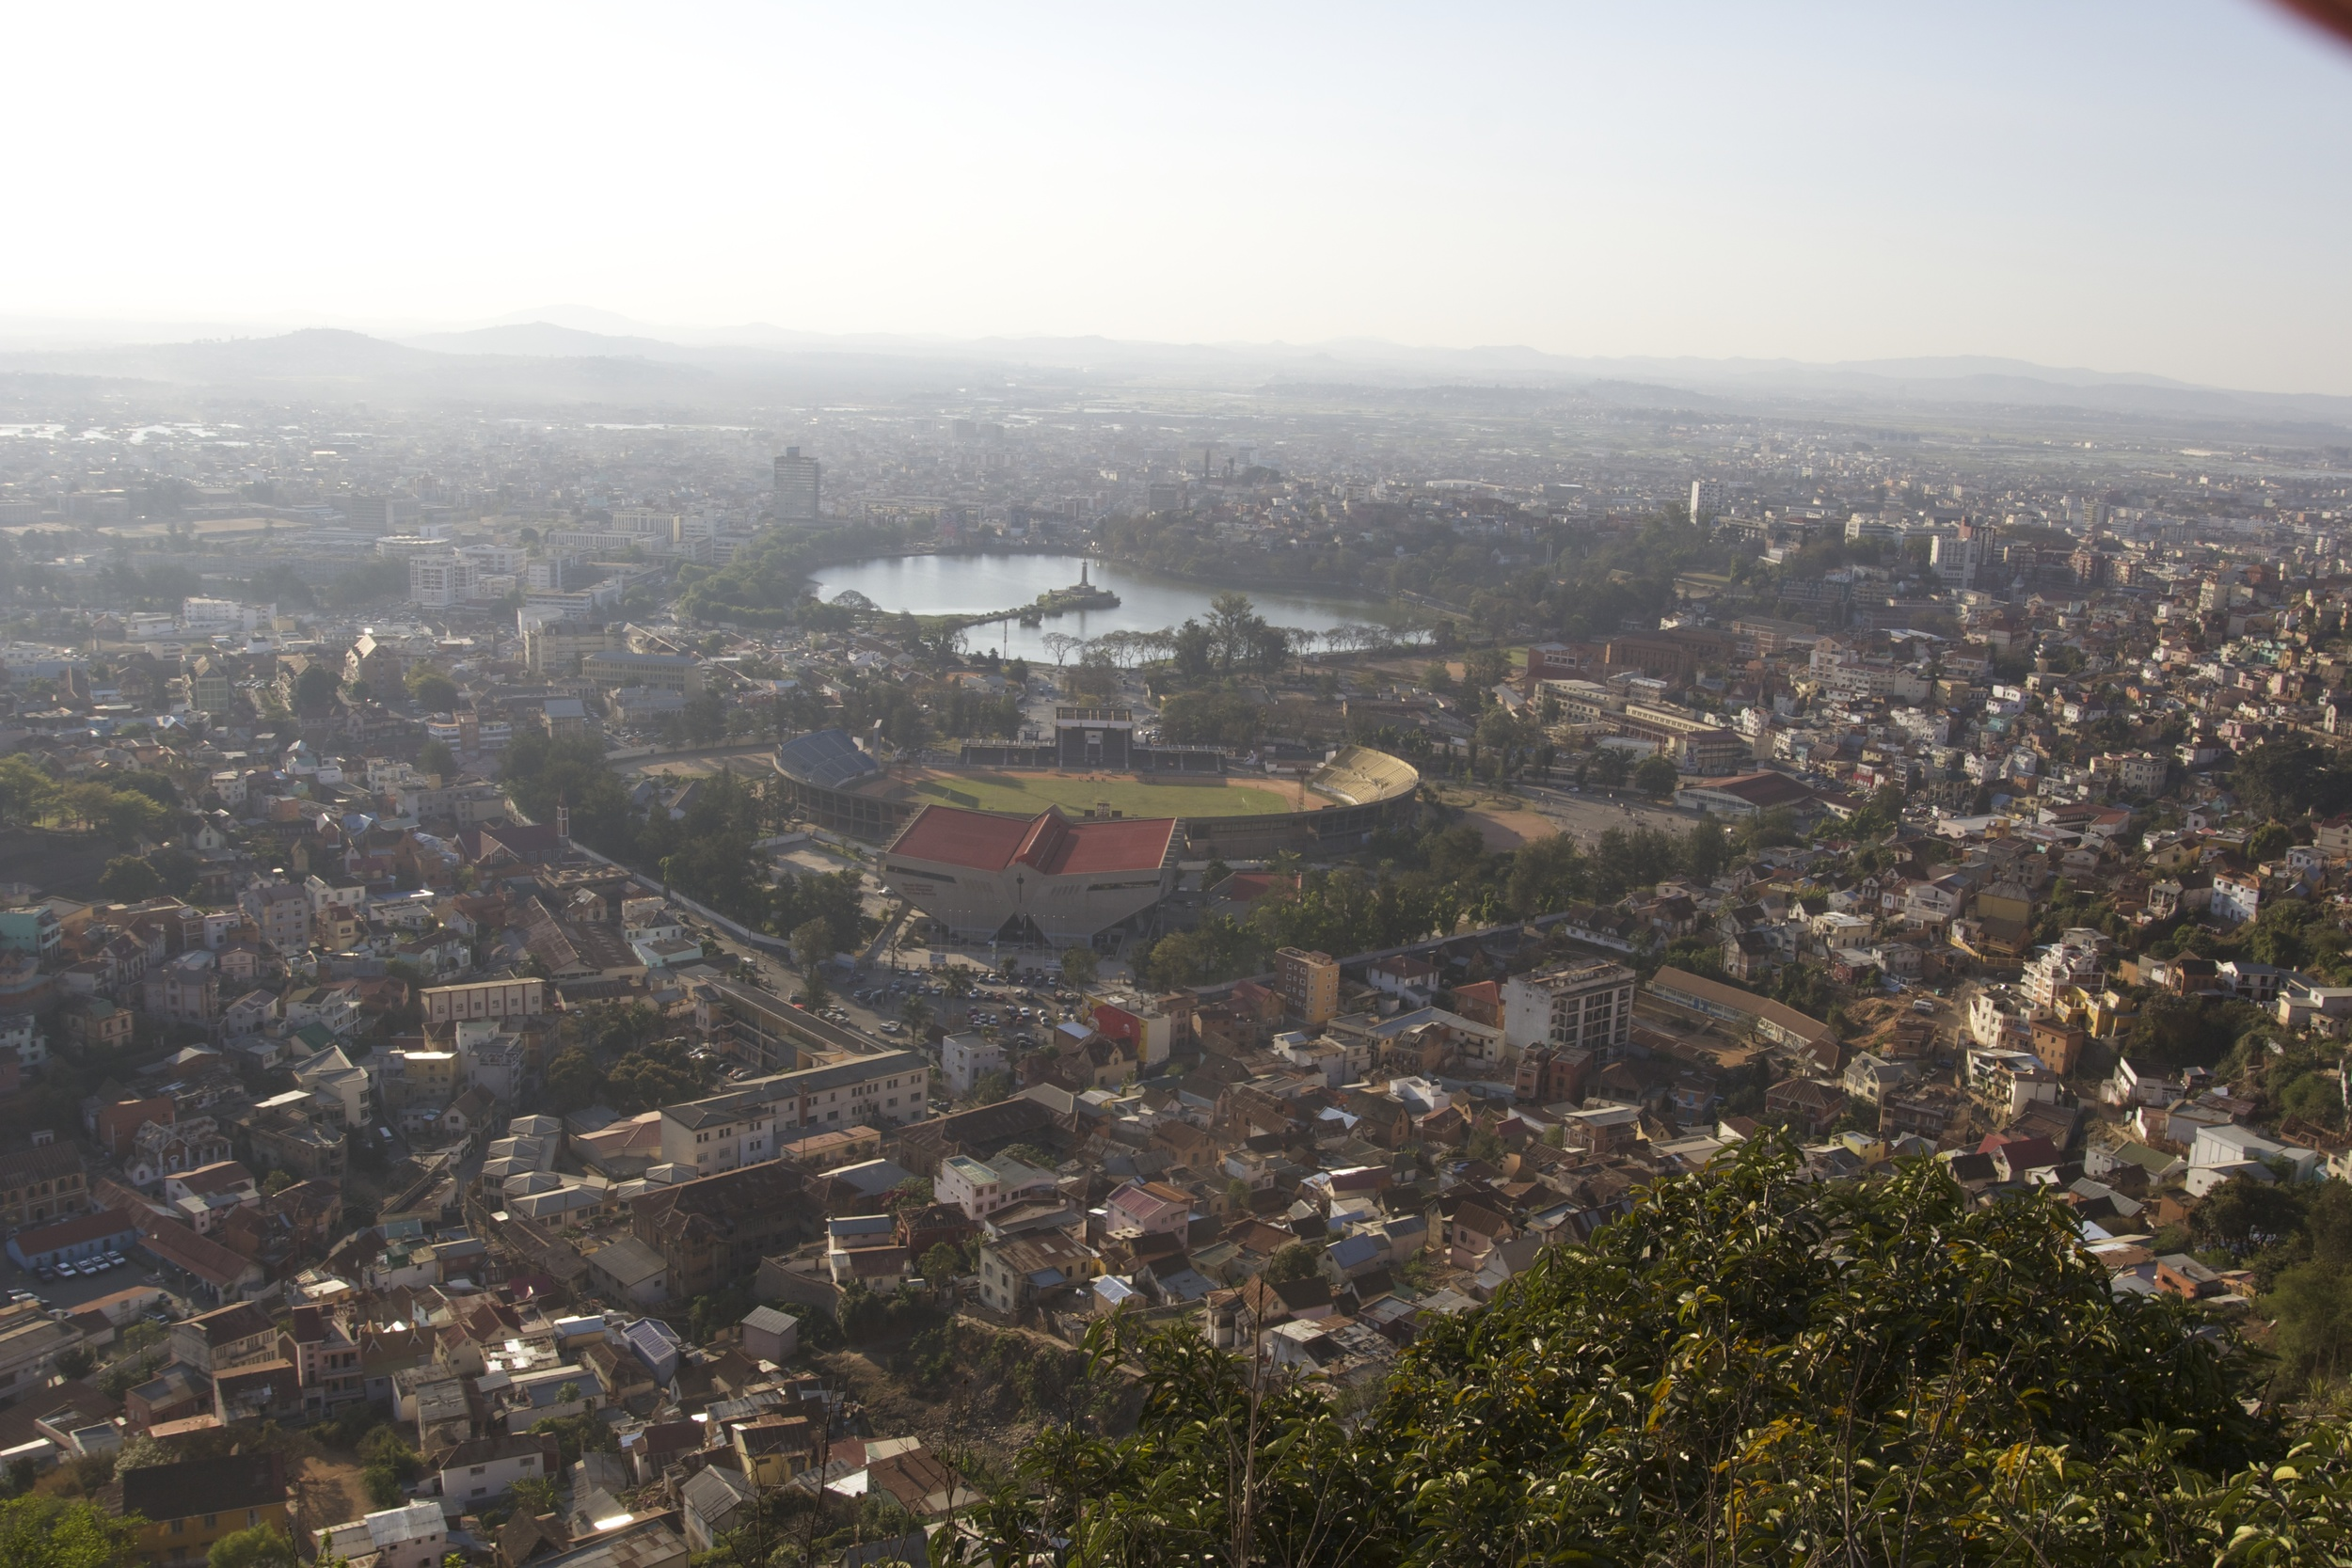 Overlooking Tana from the city's highest hill